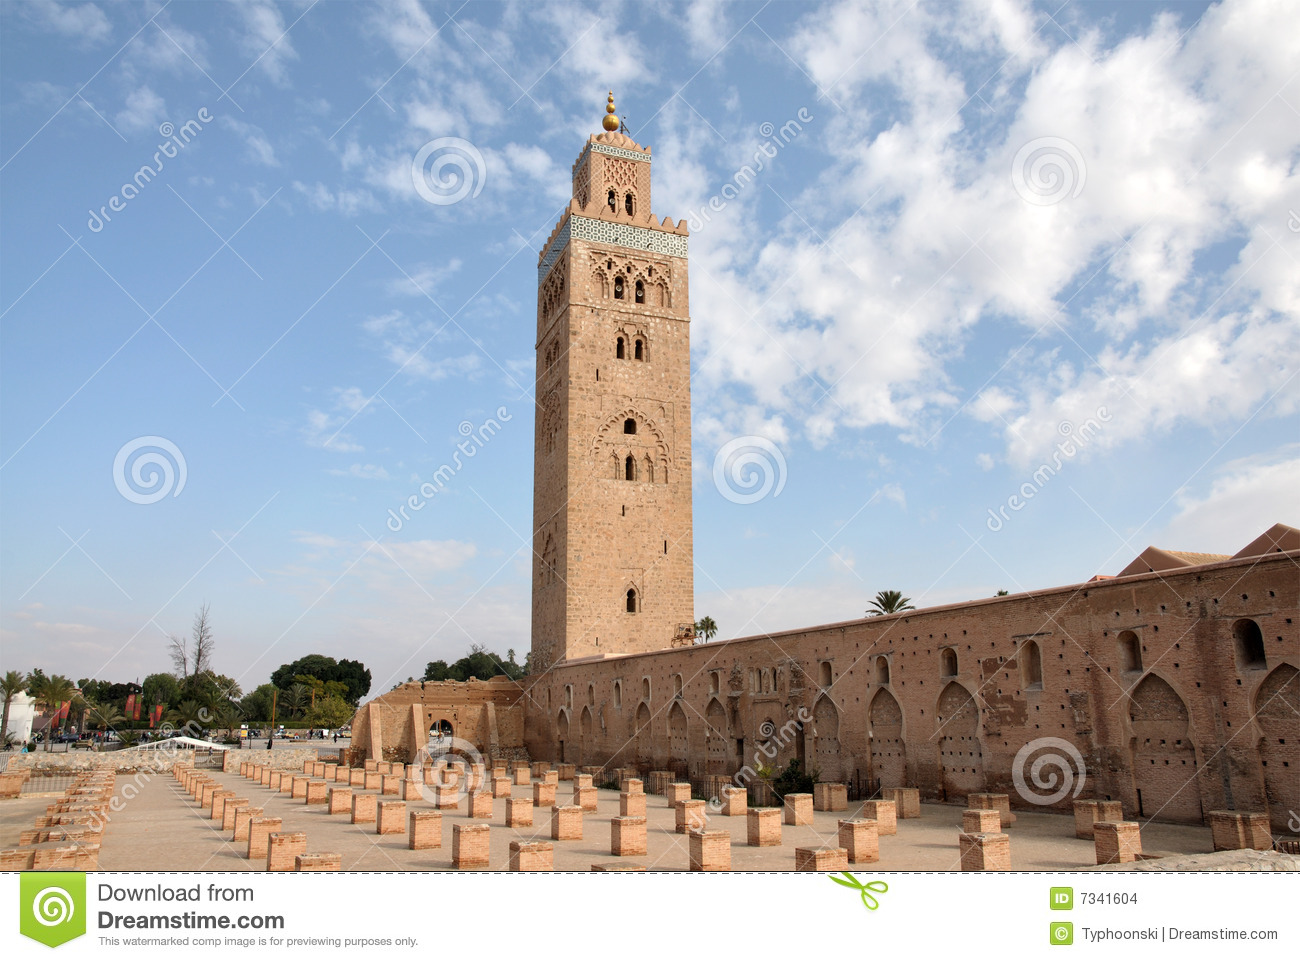 koutoubia mosque in marrakech stock images image 7341604. Black Bedroom Furniture Sets. Home Design Ideas